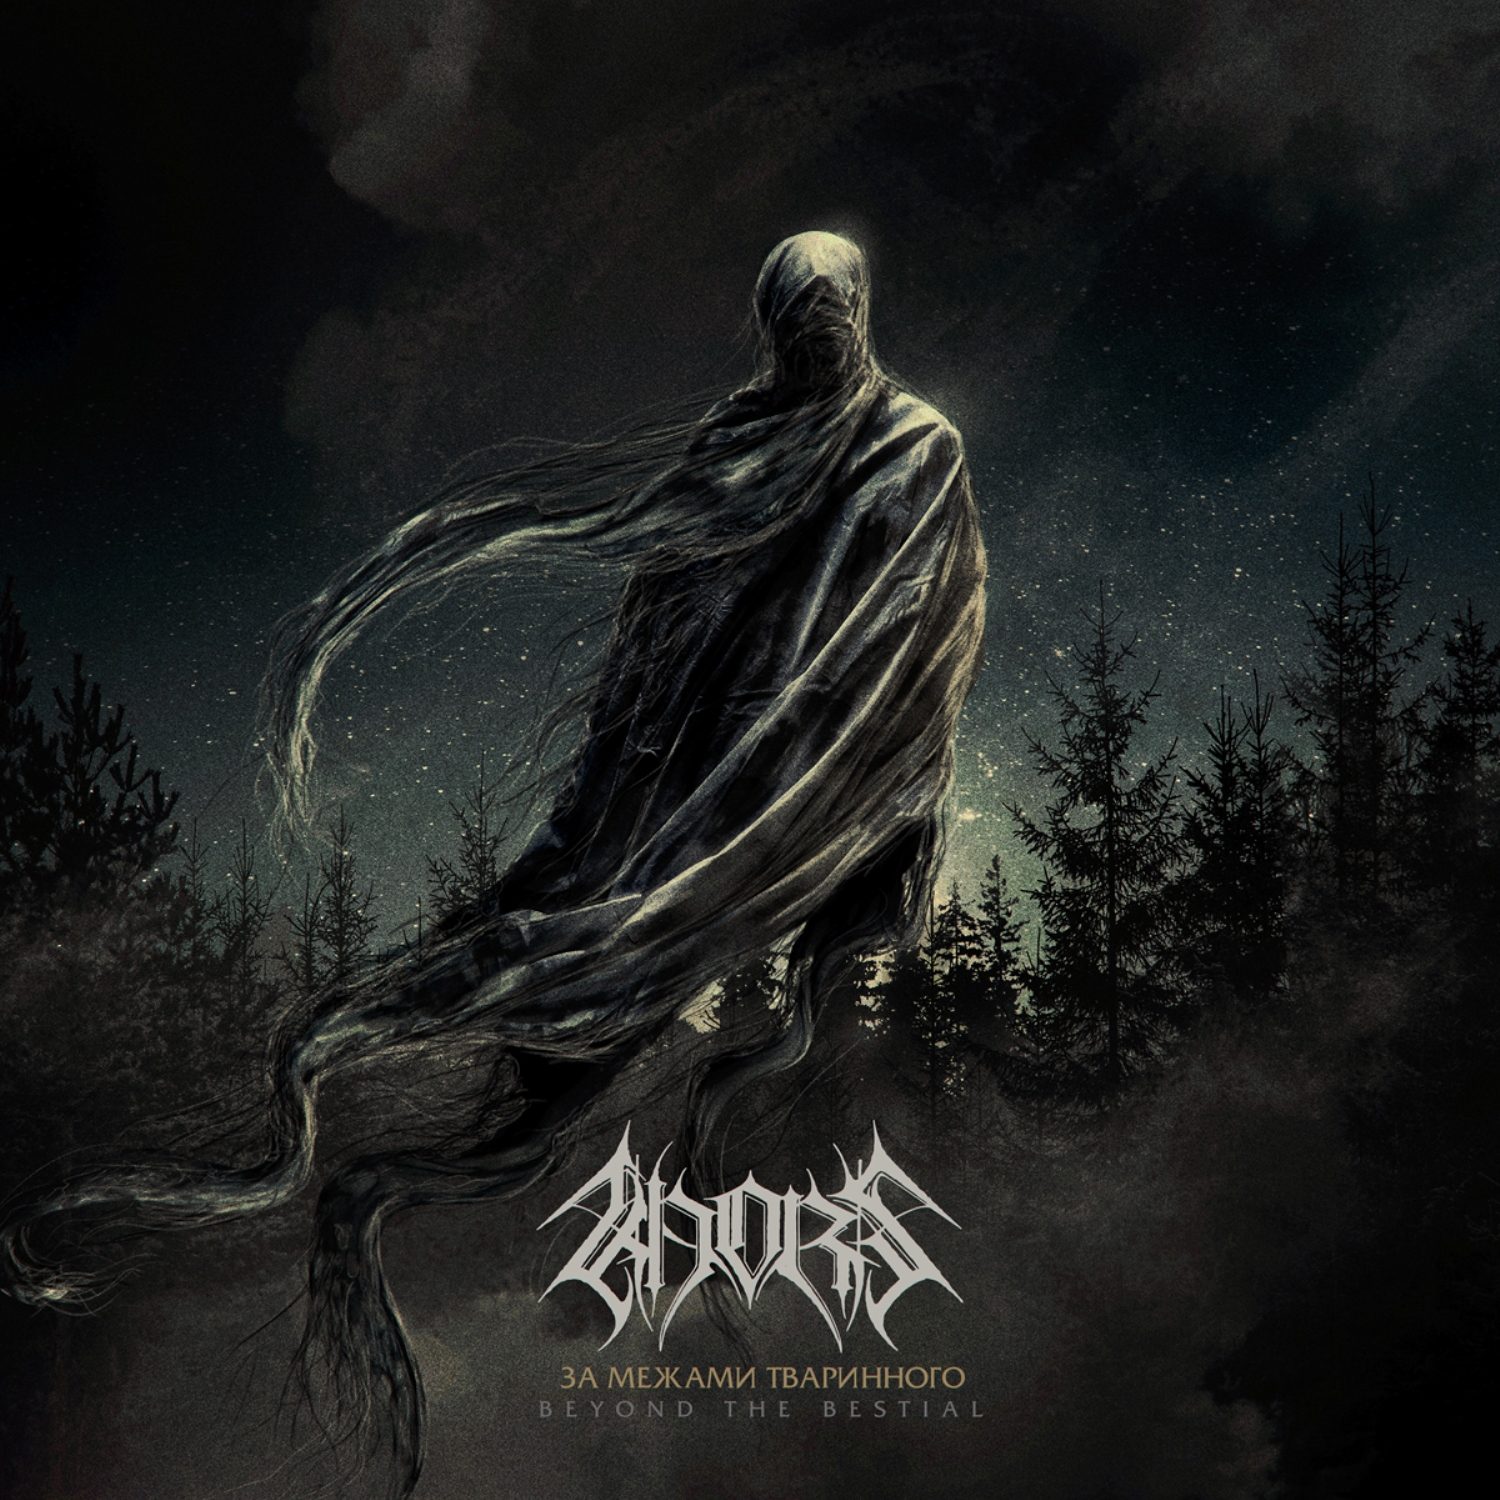 """AD010  Khors """"Beyond the bestial EP""""  Digipack Edition"""